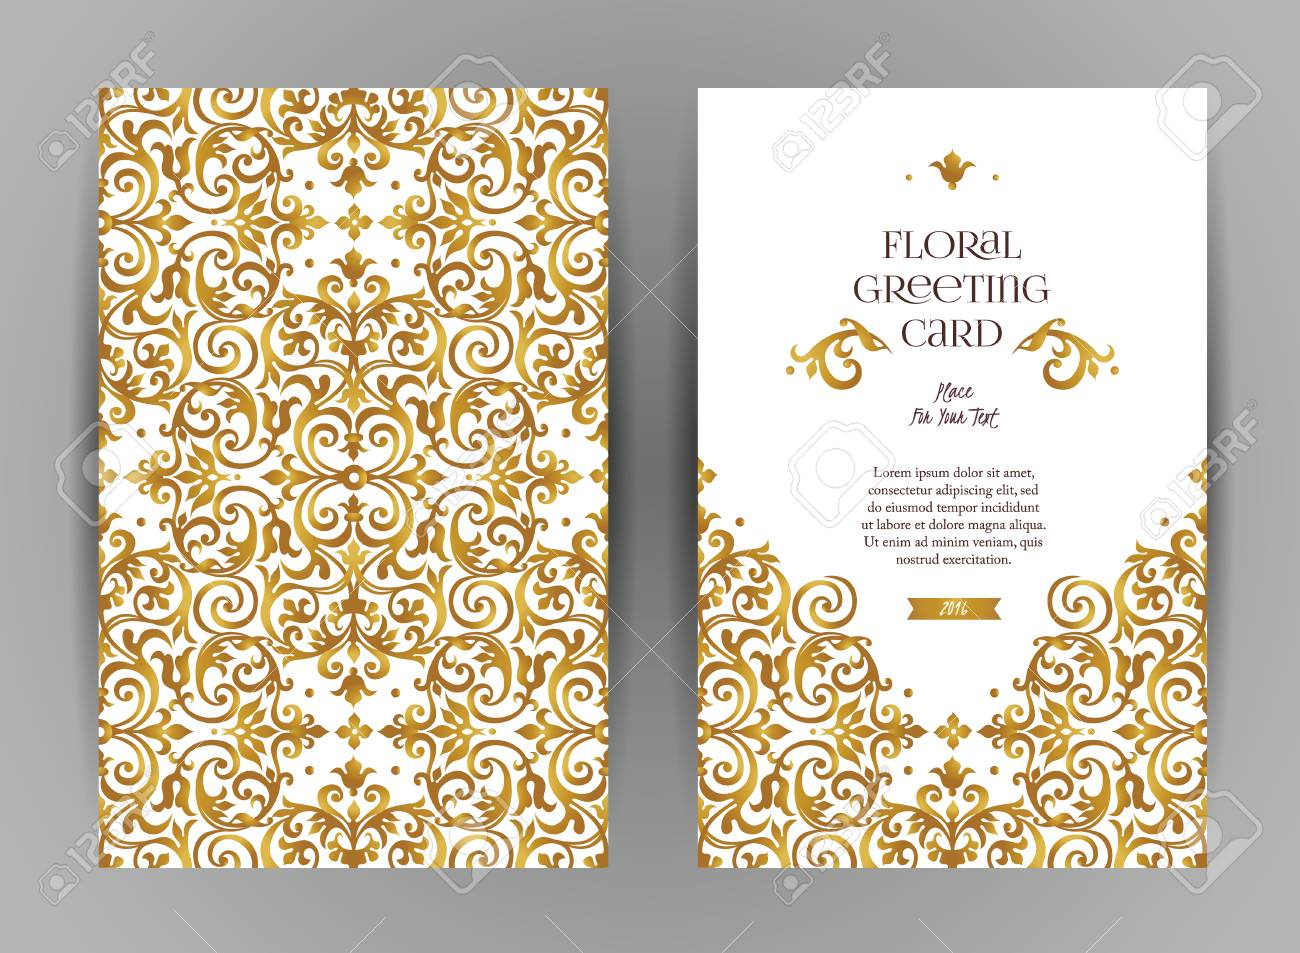 Ornate vintage cards. Golden floral decor in Victorian style. Template frame for save the date and greeting card, wedding invitation, certificate, leaflet, poster. Vector border with place for text. - 71898538